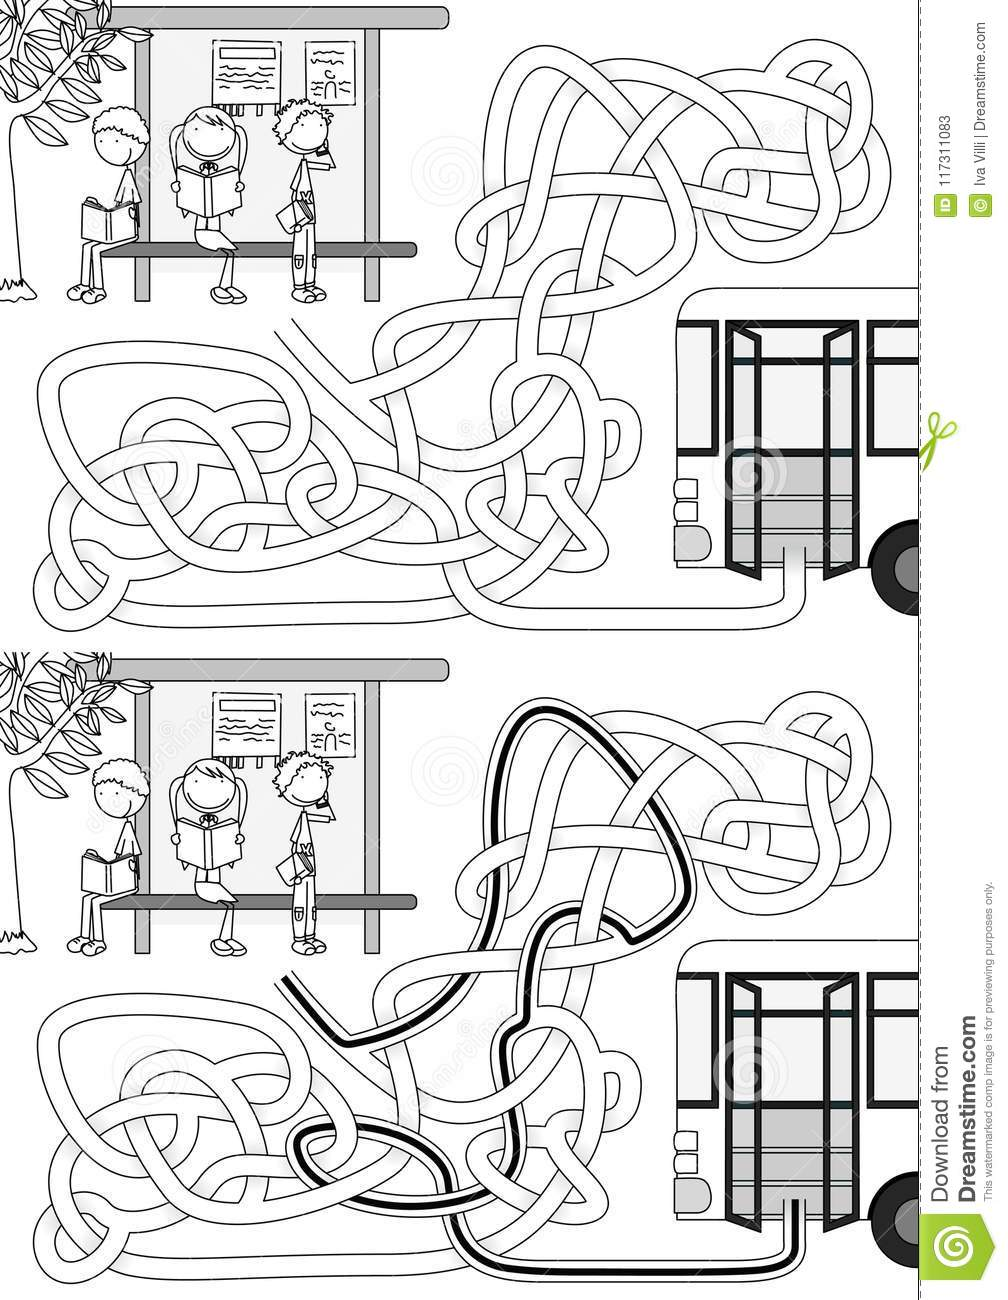 Bus Stop Maze Stock Vector Illustration Of Black Drawing 117311083